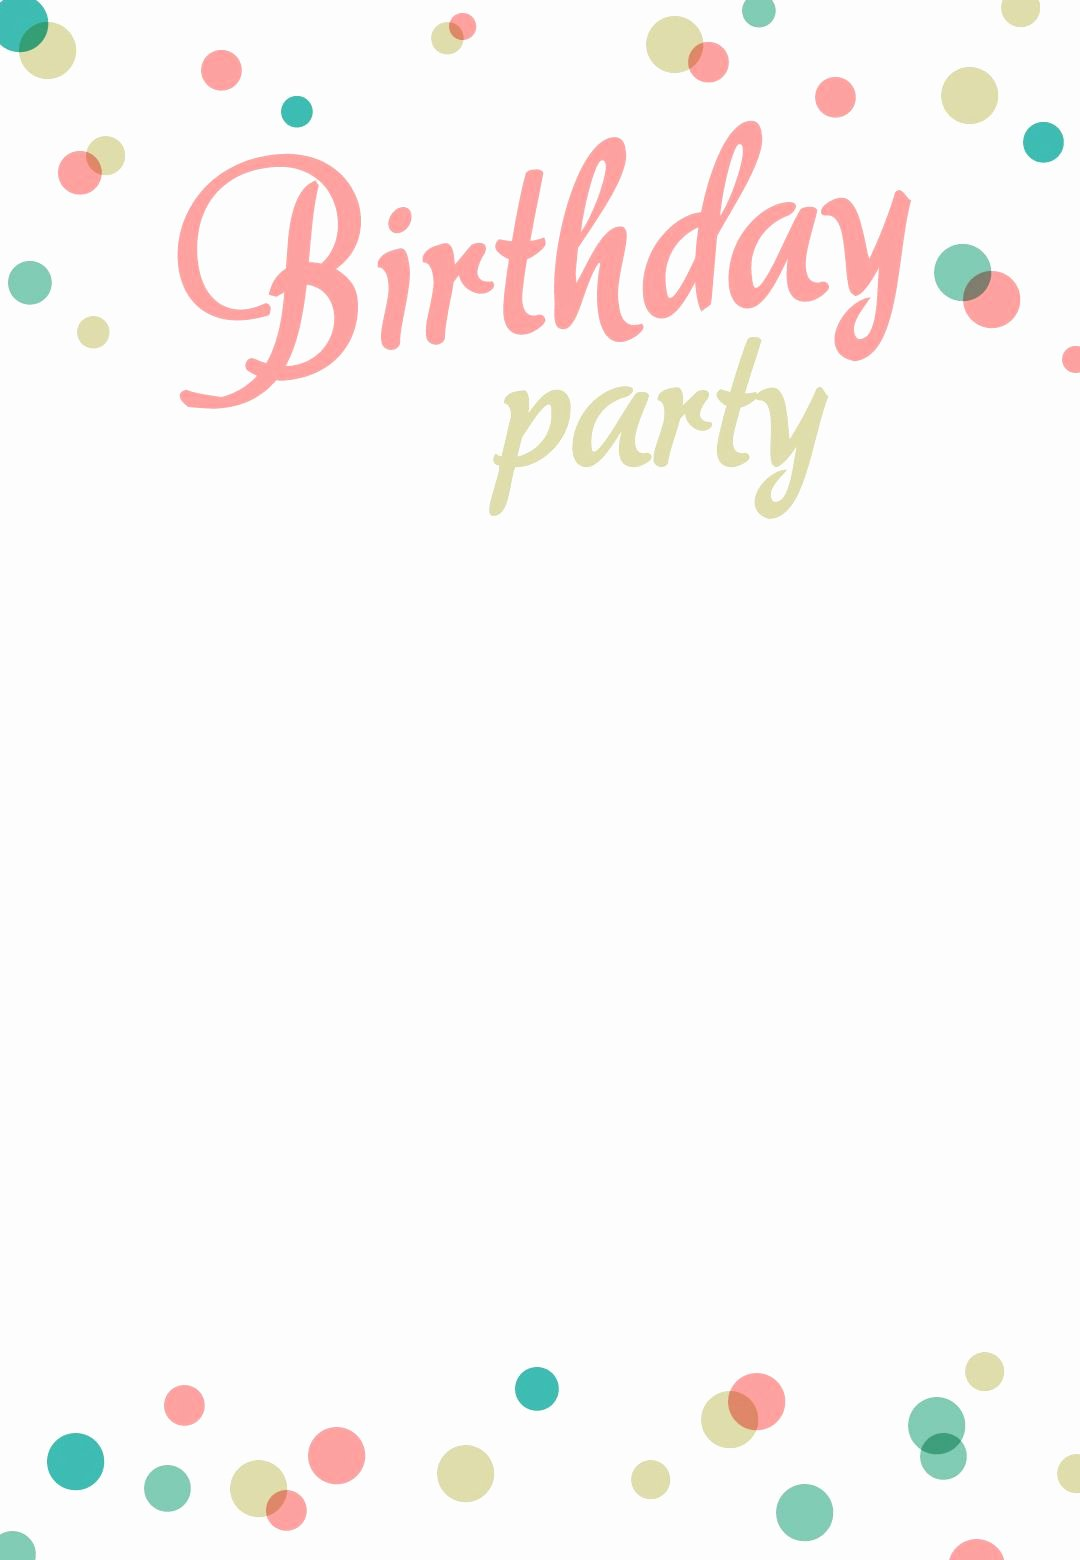 Free Party Invitation Template Word Luxury Birthday Party Invitation Free Printable